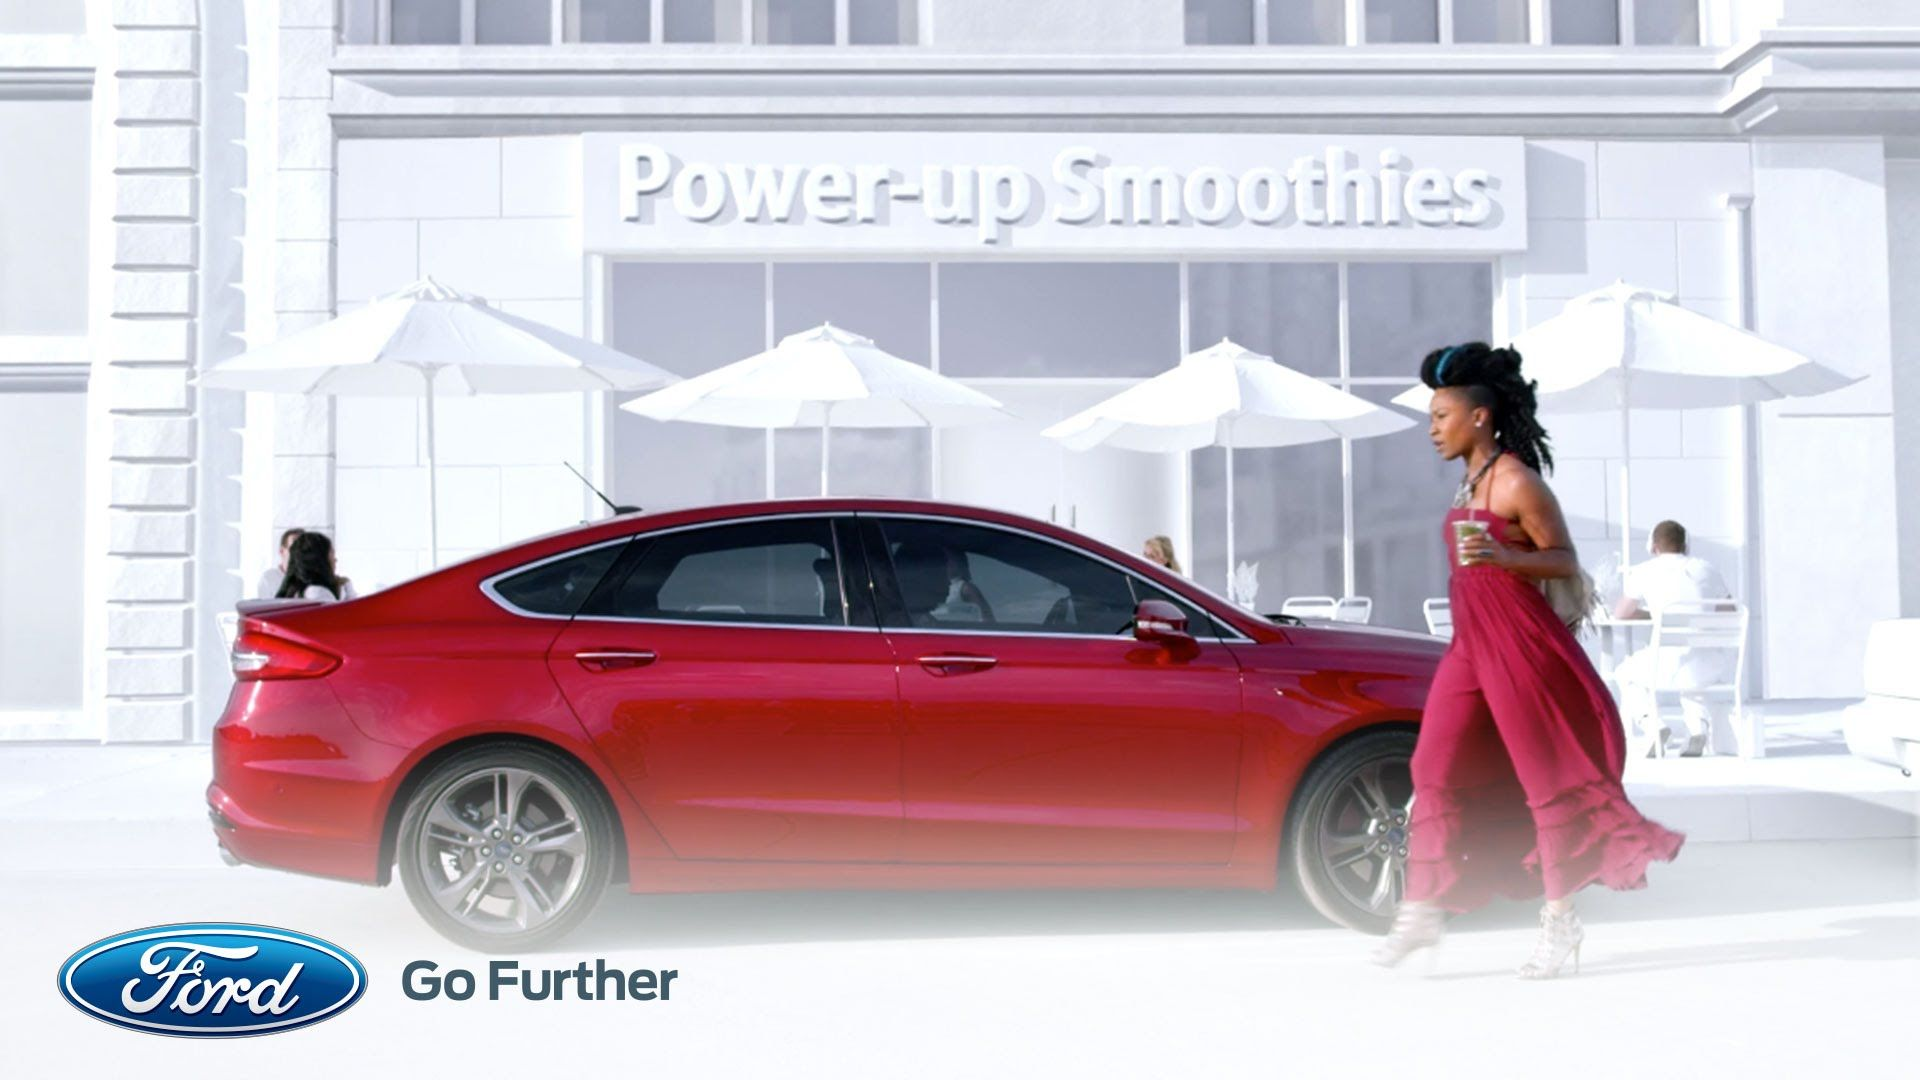 The 2017 Ford Motor Company Fusion Sport drives to the